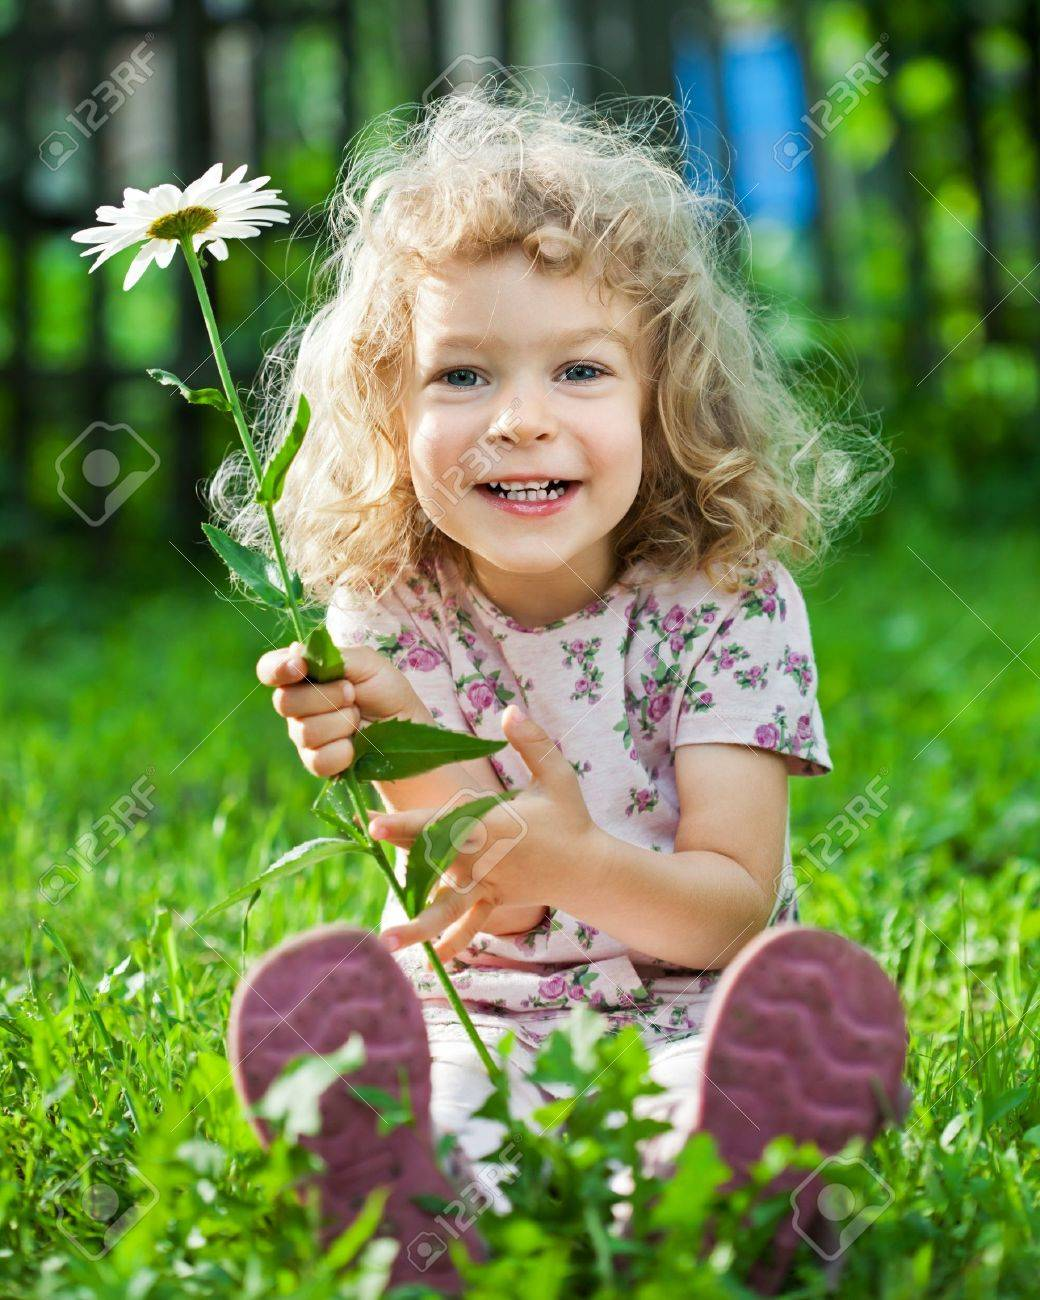 Happy smiling child with flower sitting on green grass outdoors in spring garden Stock Photo - 12580805